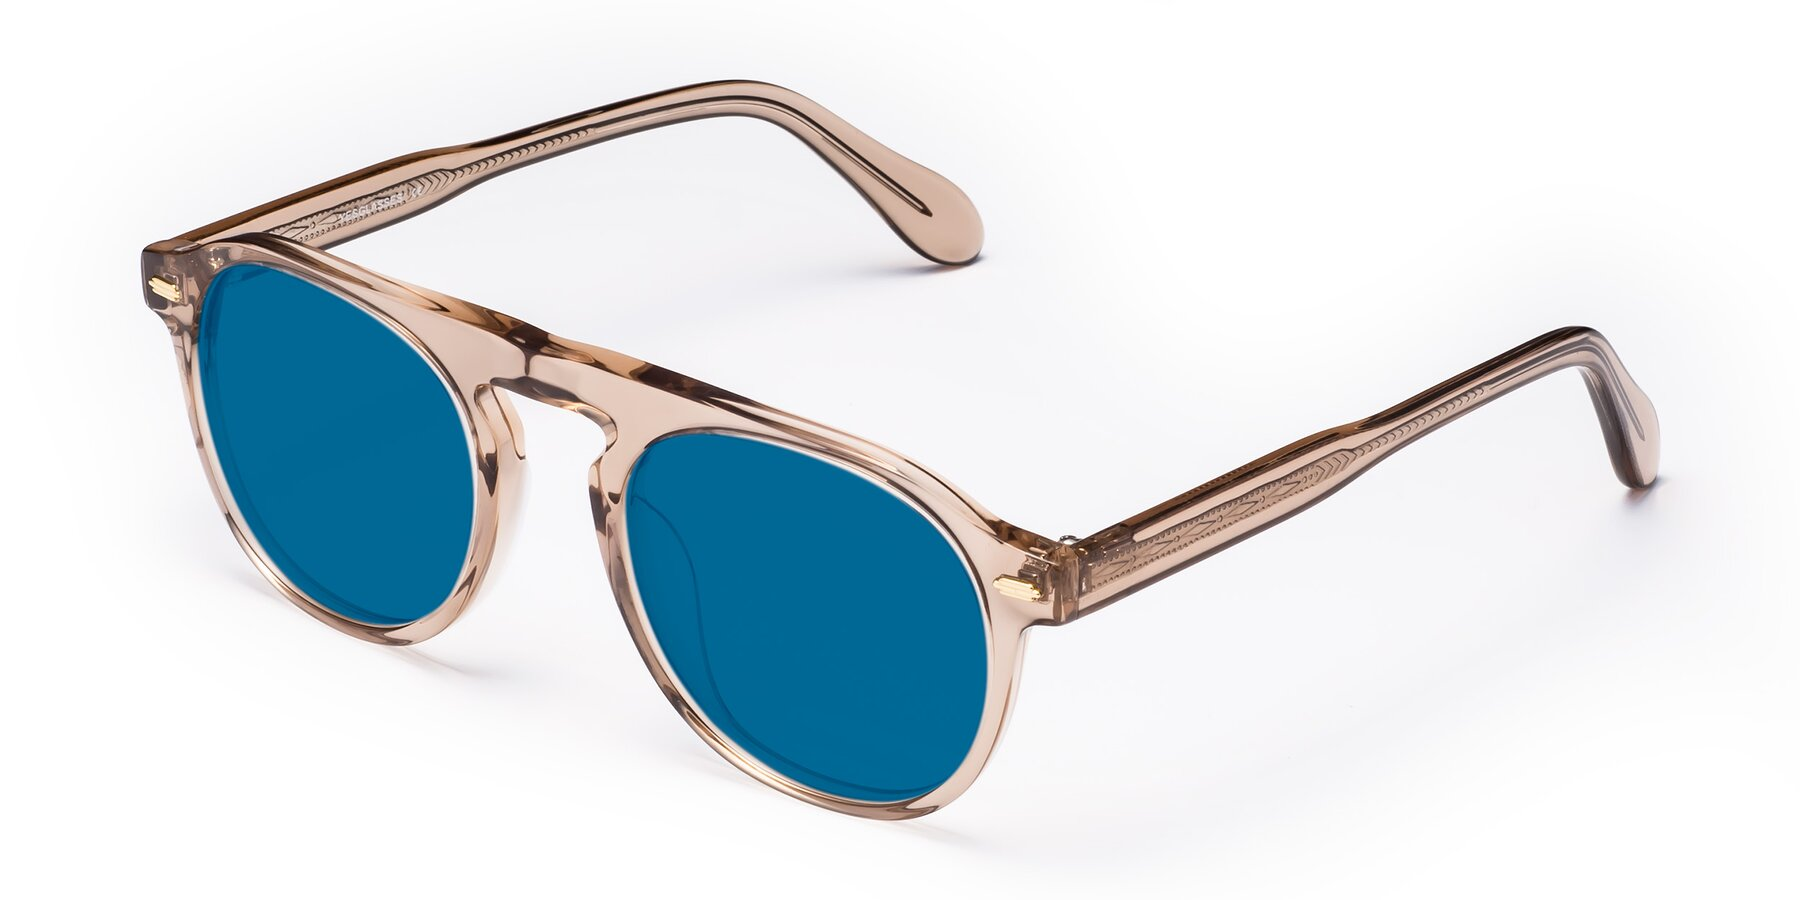 Angle of Mufasa in light Brown with Blue Tinted Lenses